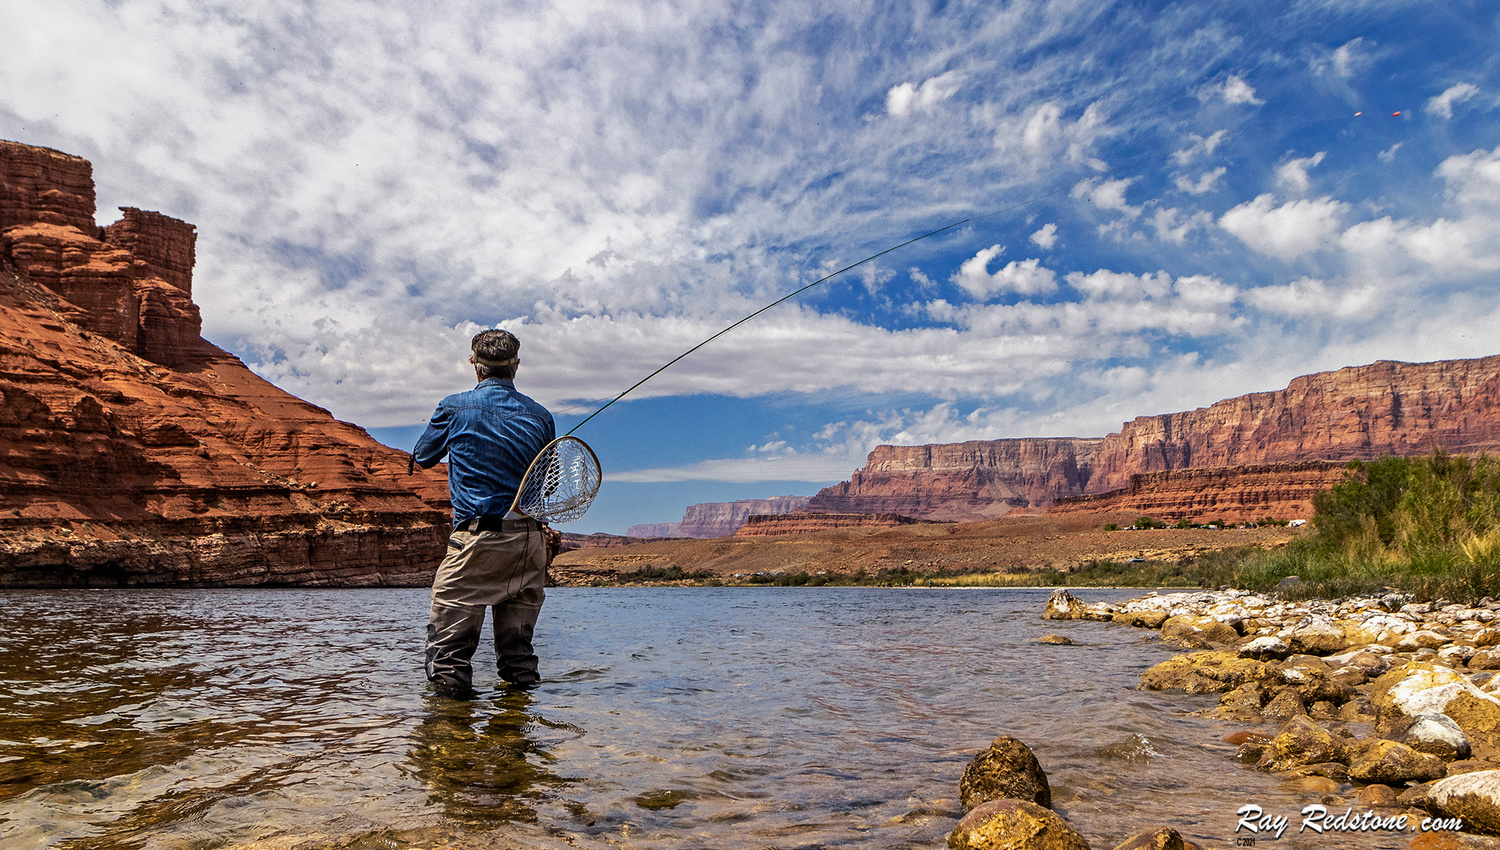 Man Fly-Fishing On The Colorado River At Lees Ferry, AZ by Ray Redstone